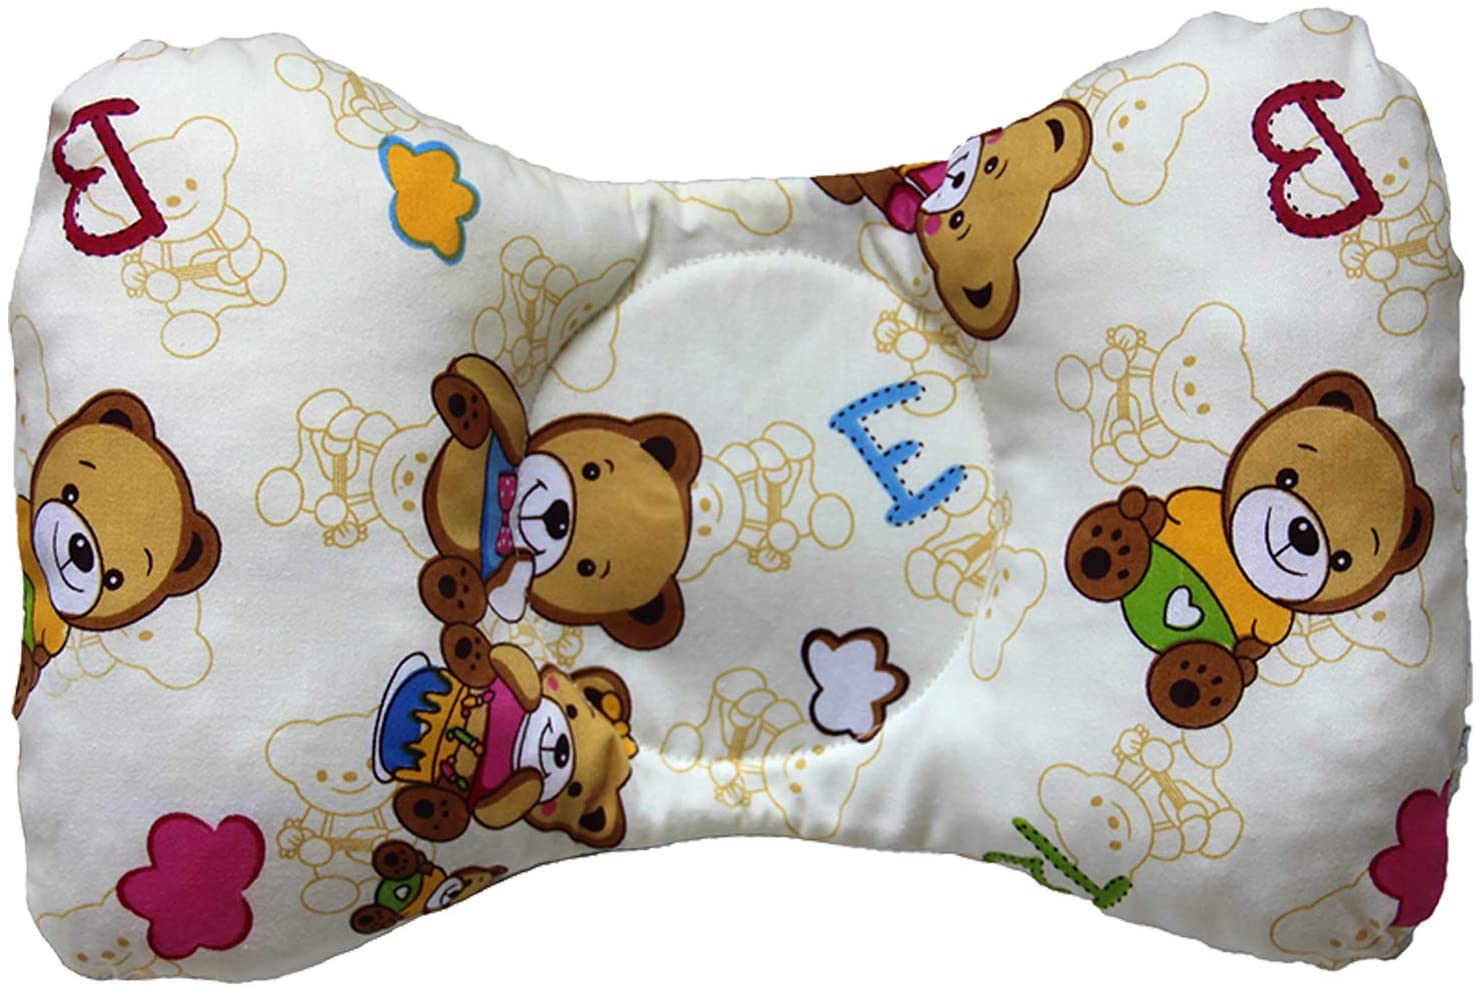 JUYIVIP Baby Pillow 0-1 Years Old Newborn Anti-Heavy Head Head Correction Baby Correction Head Correction Pillow Summer Breathable, Gift for Newborn, Baby boy and Baby Girl. (Little Bear)